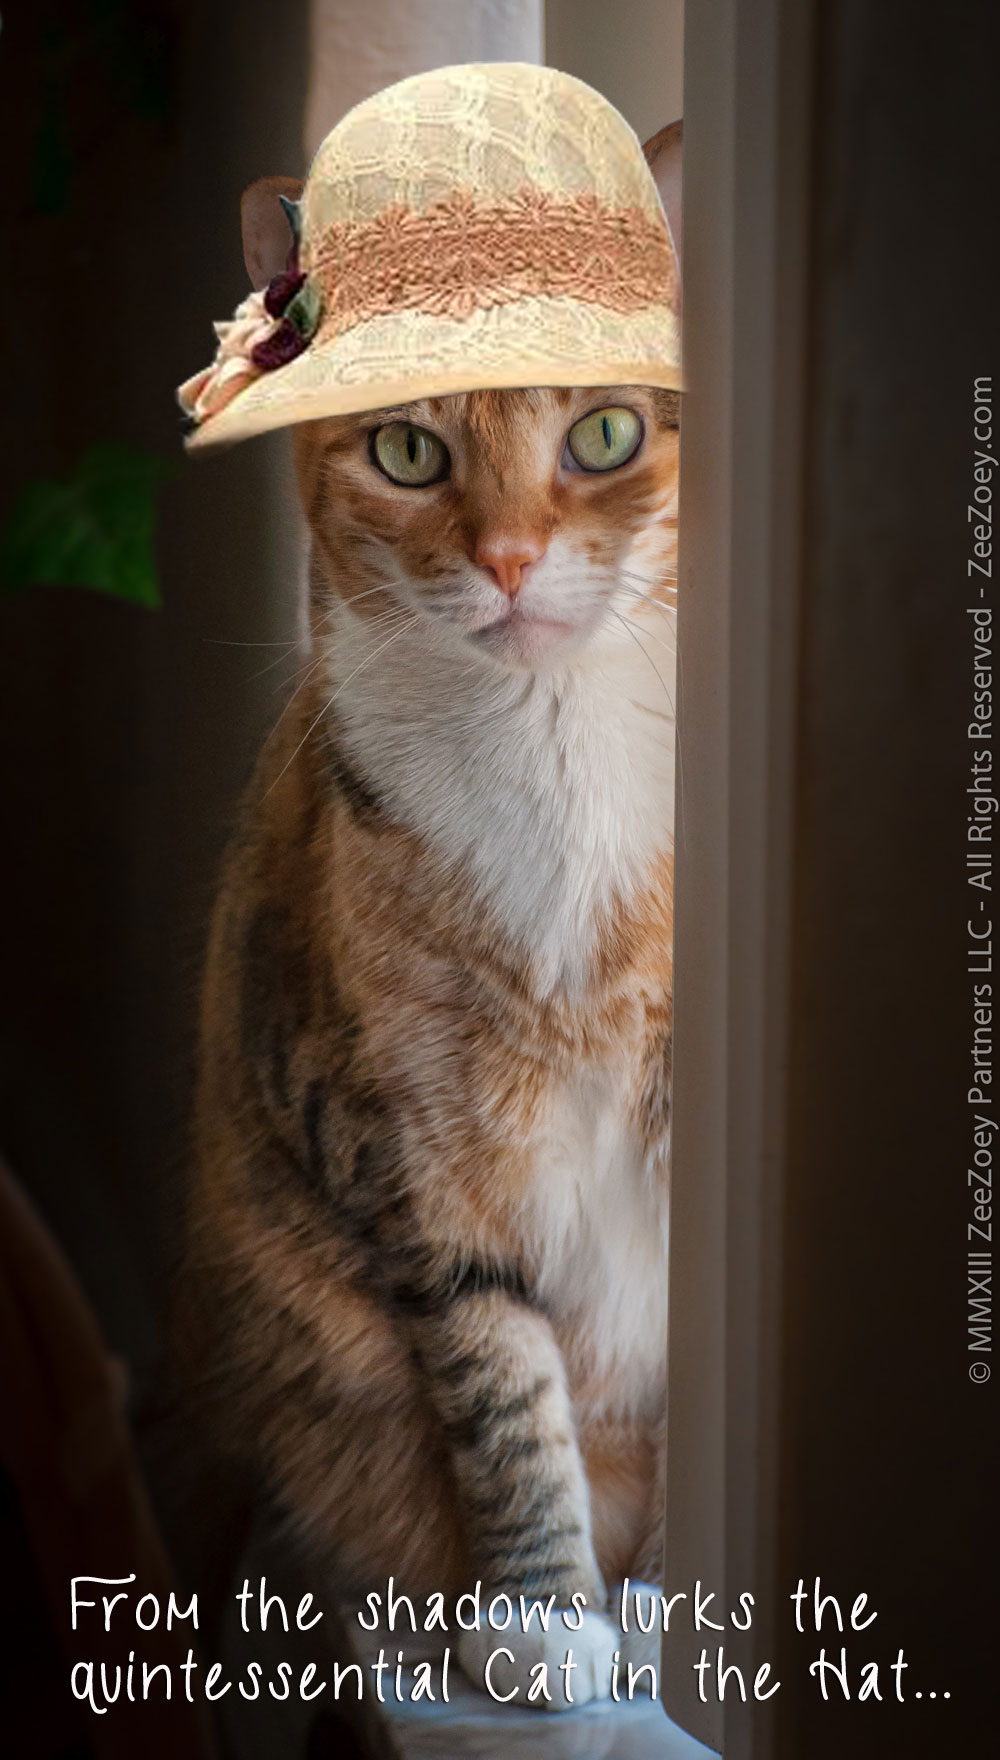 Harley the rescue cat from Zee & Zoey's Cat Chronicles wears a hat for Dr. Seuss Read Across America Day!